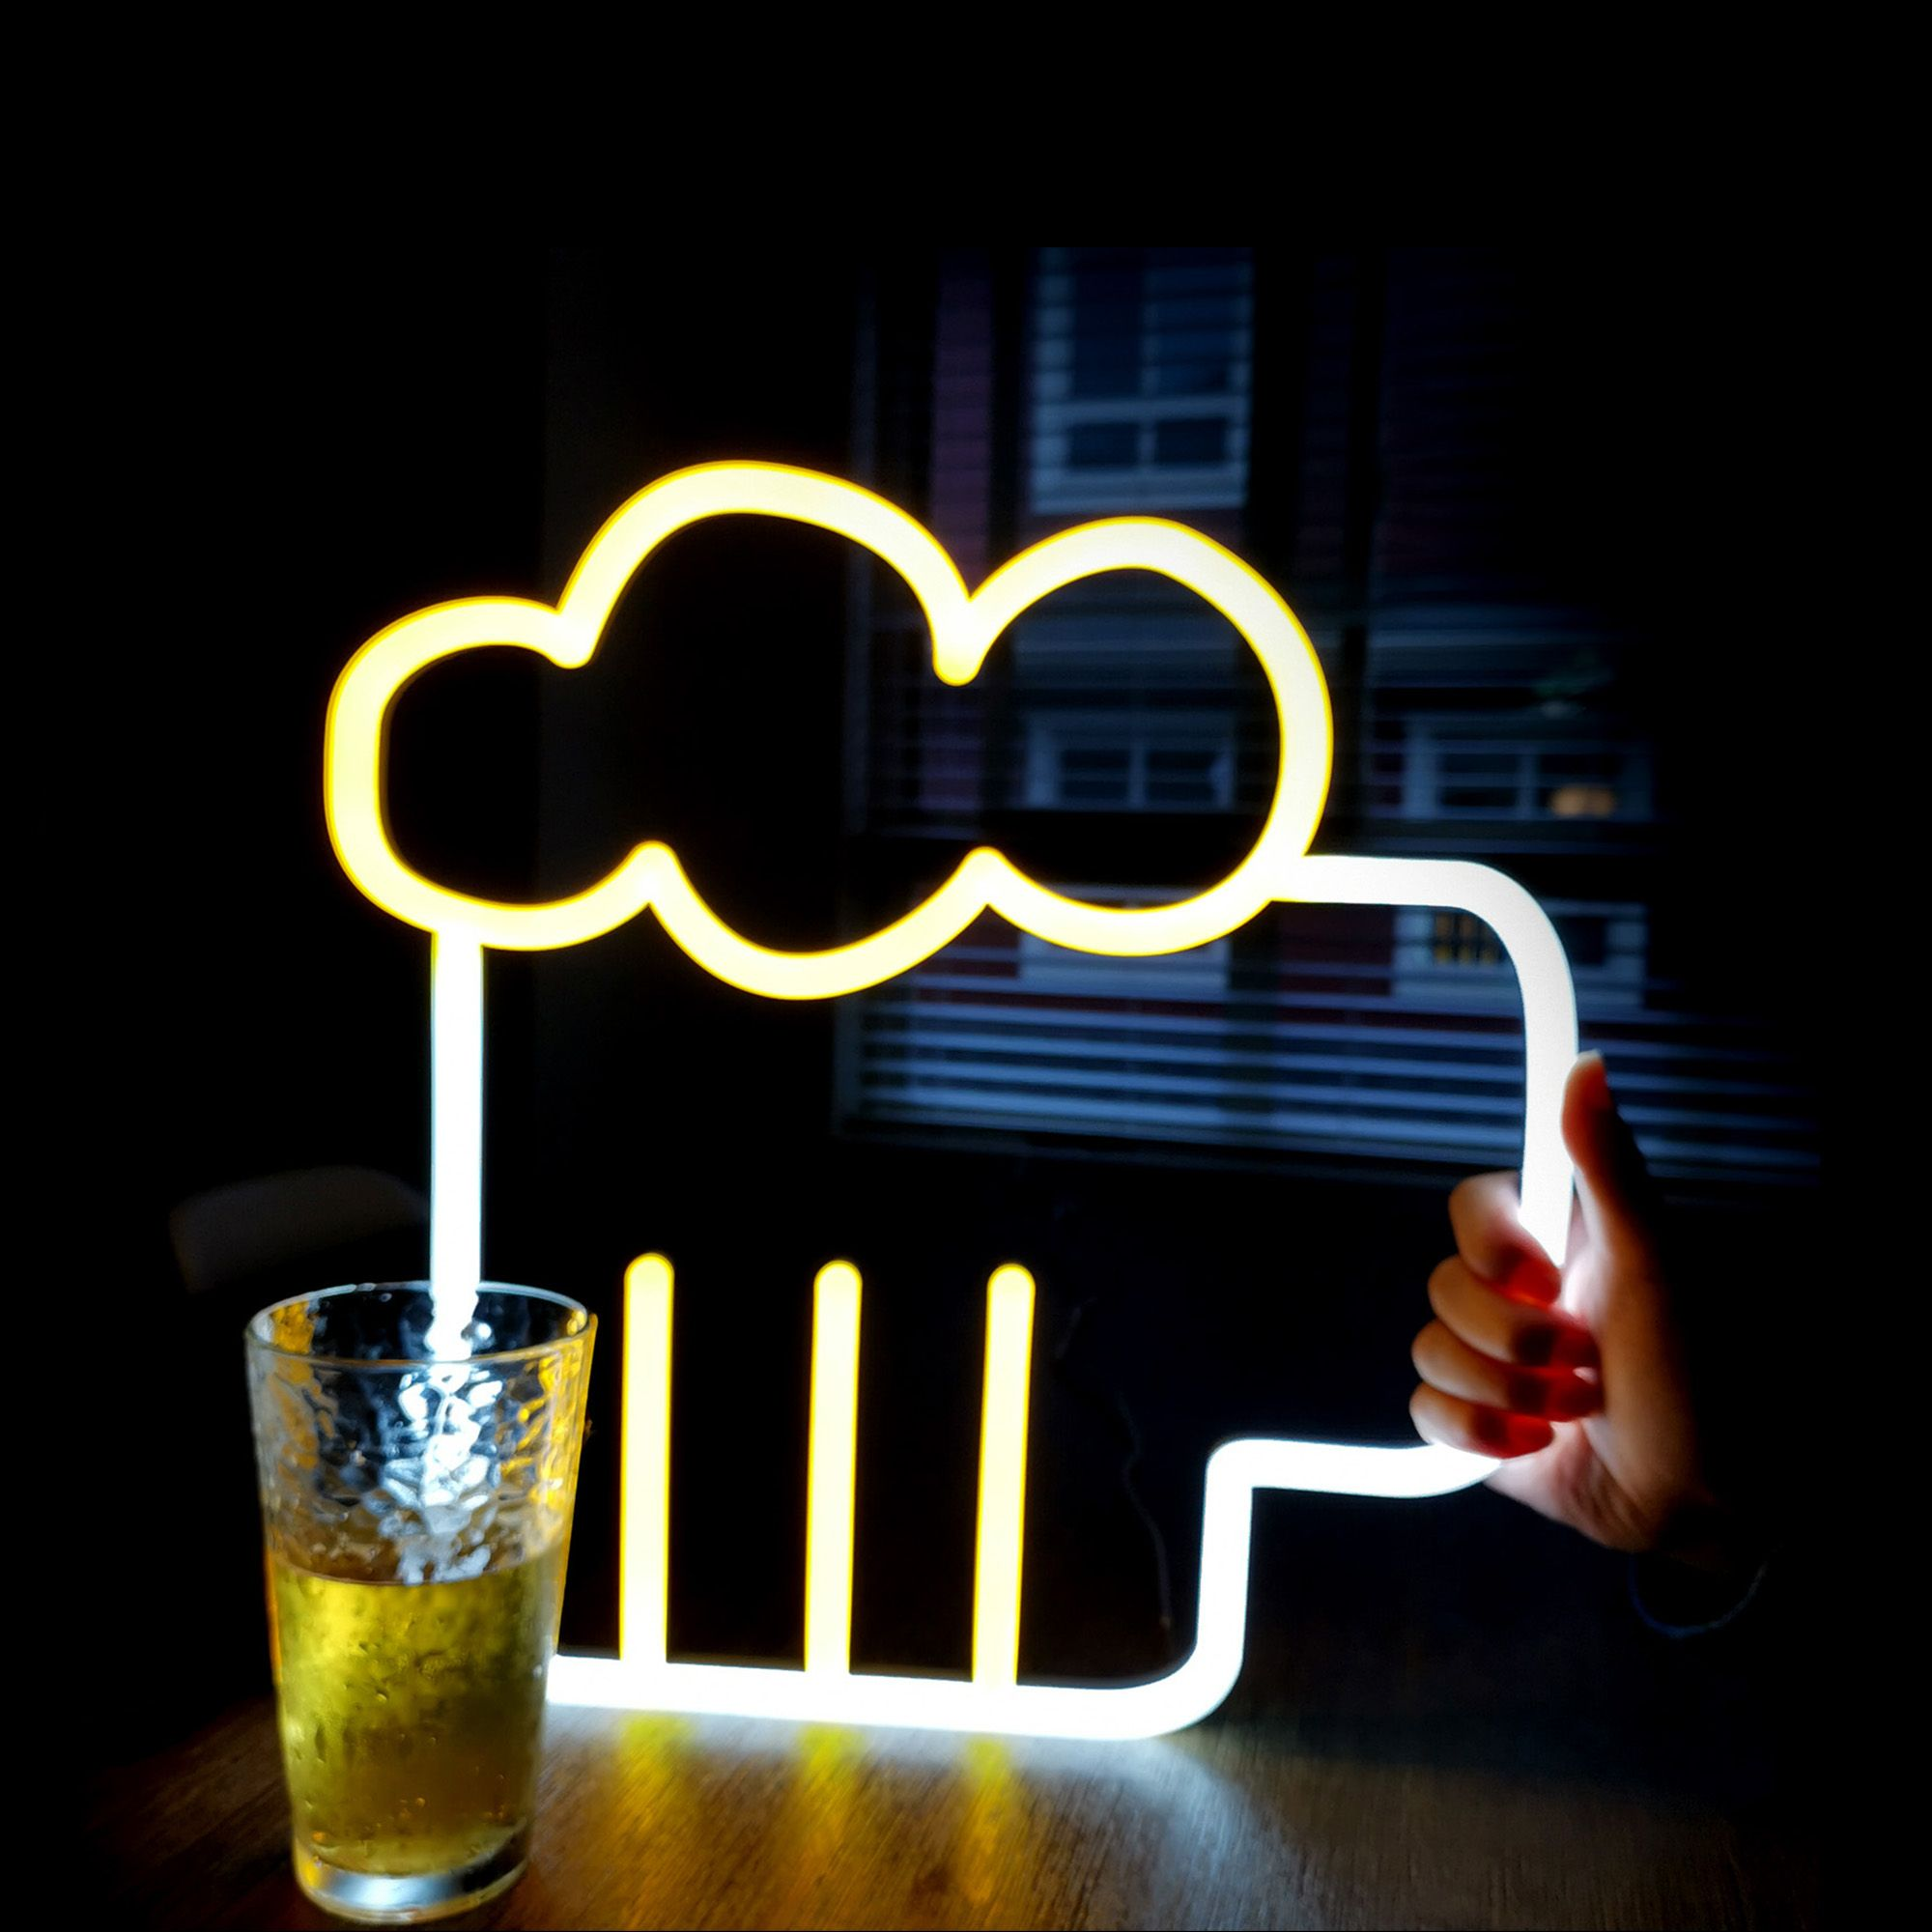 The beer neon sign is a great wall sign decor to invite people to have a break. Pubs, bars, and nightclubs can use the LED beer sign to attract customers and relax with a mug of beer.